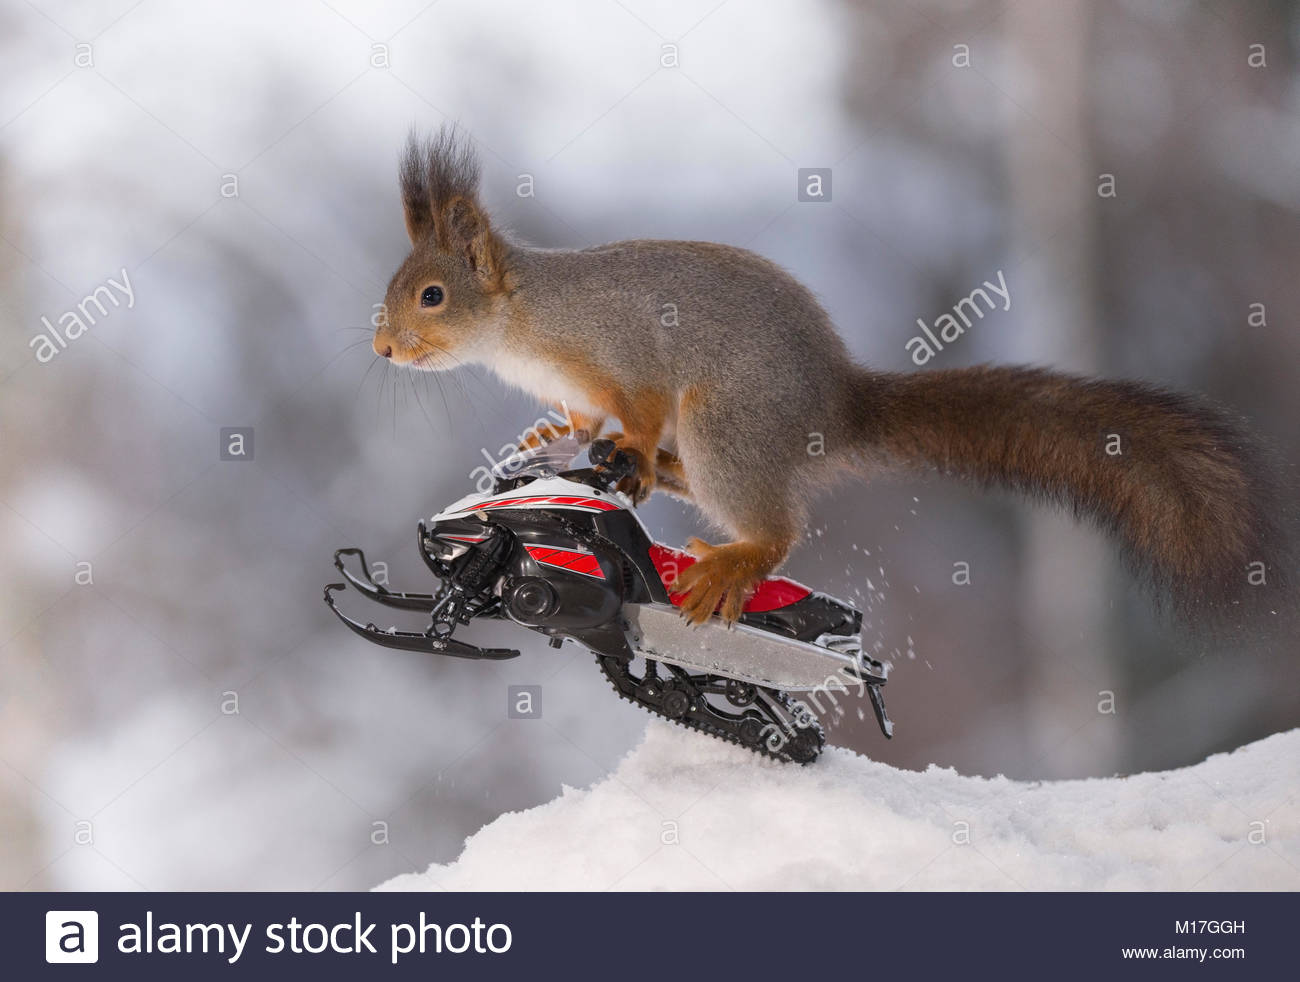 Red squirrel is jumping with  a snowmobile - Stock Image